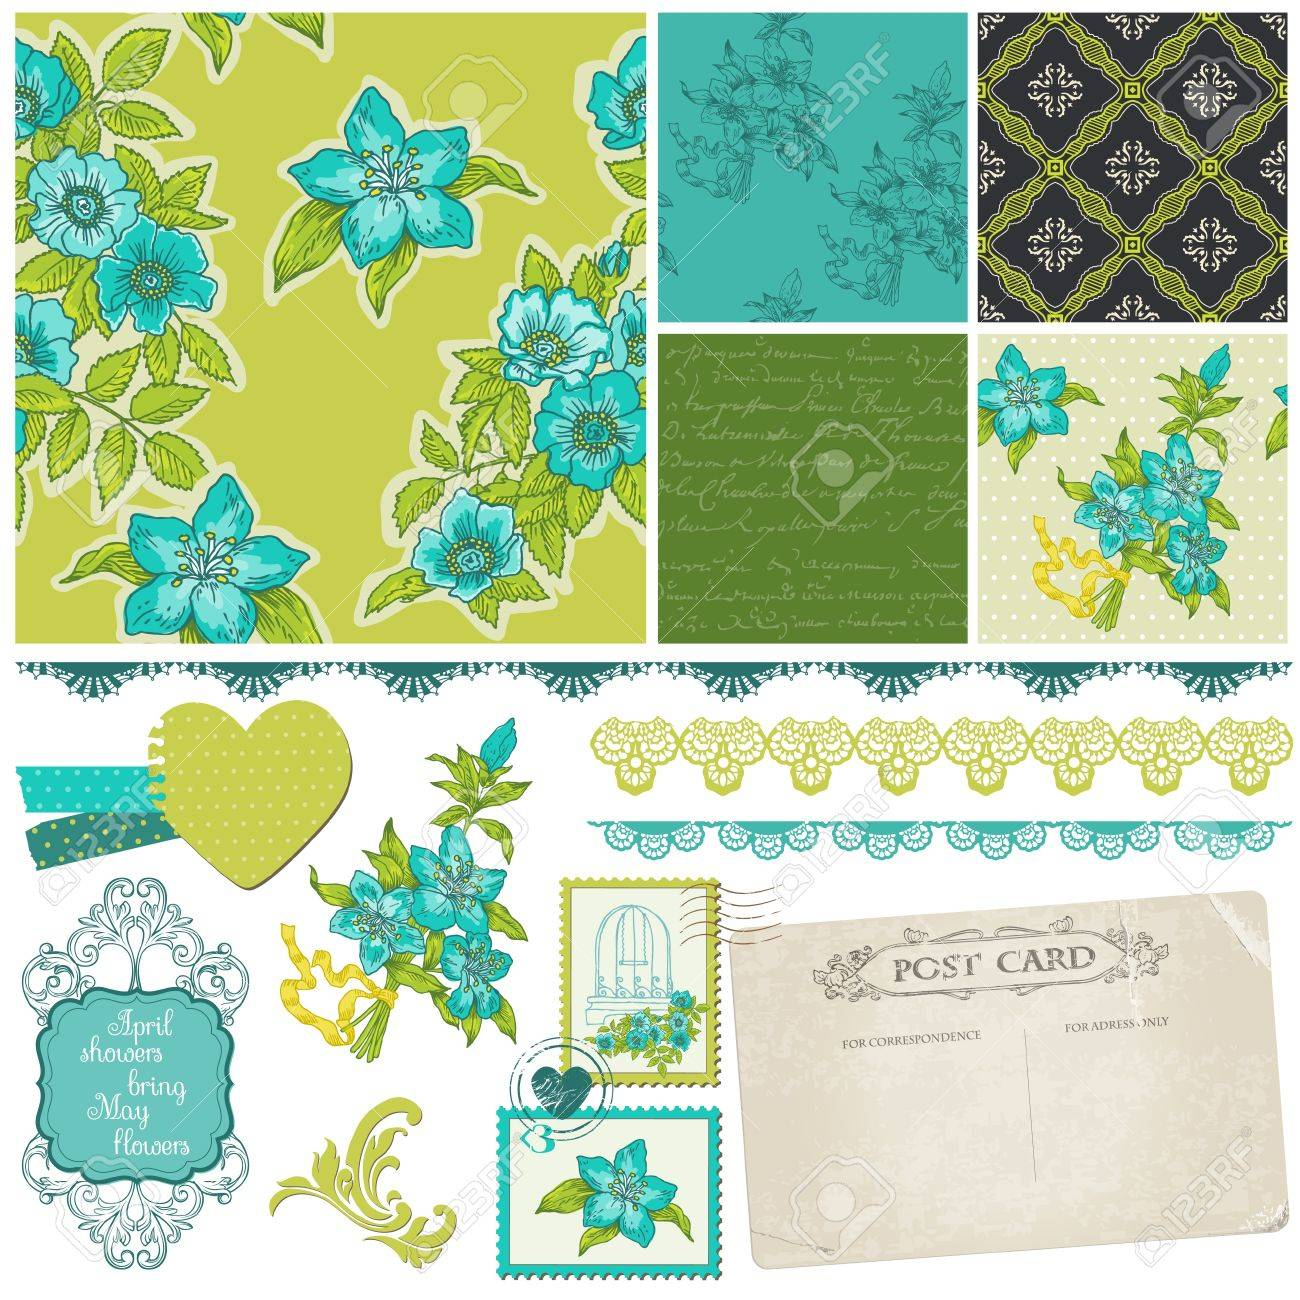 Scrapbook Design Elements - Blue Flowers Stock Vector - 13777496